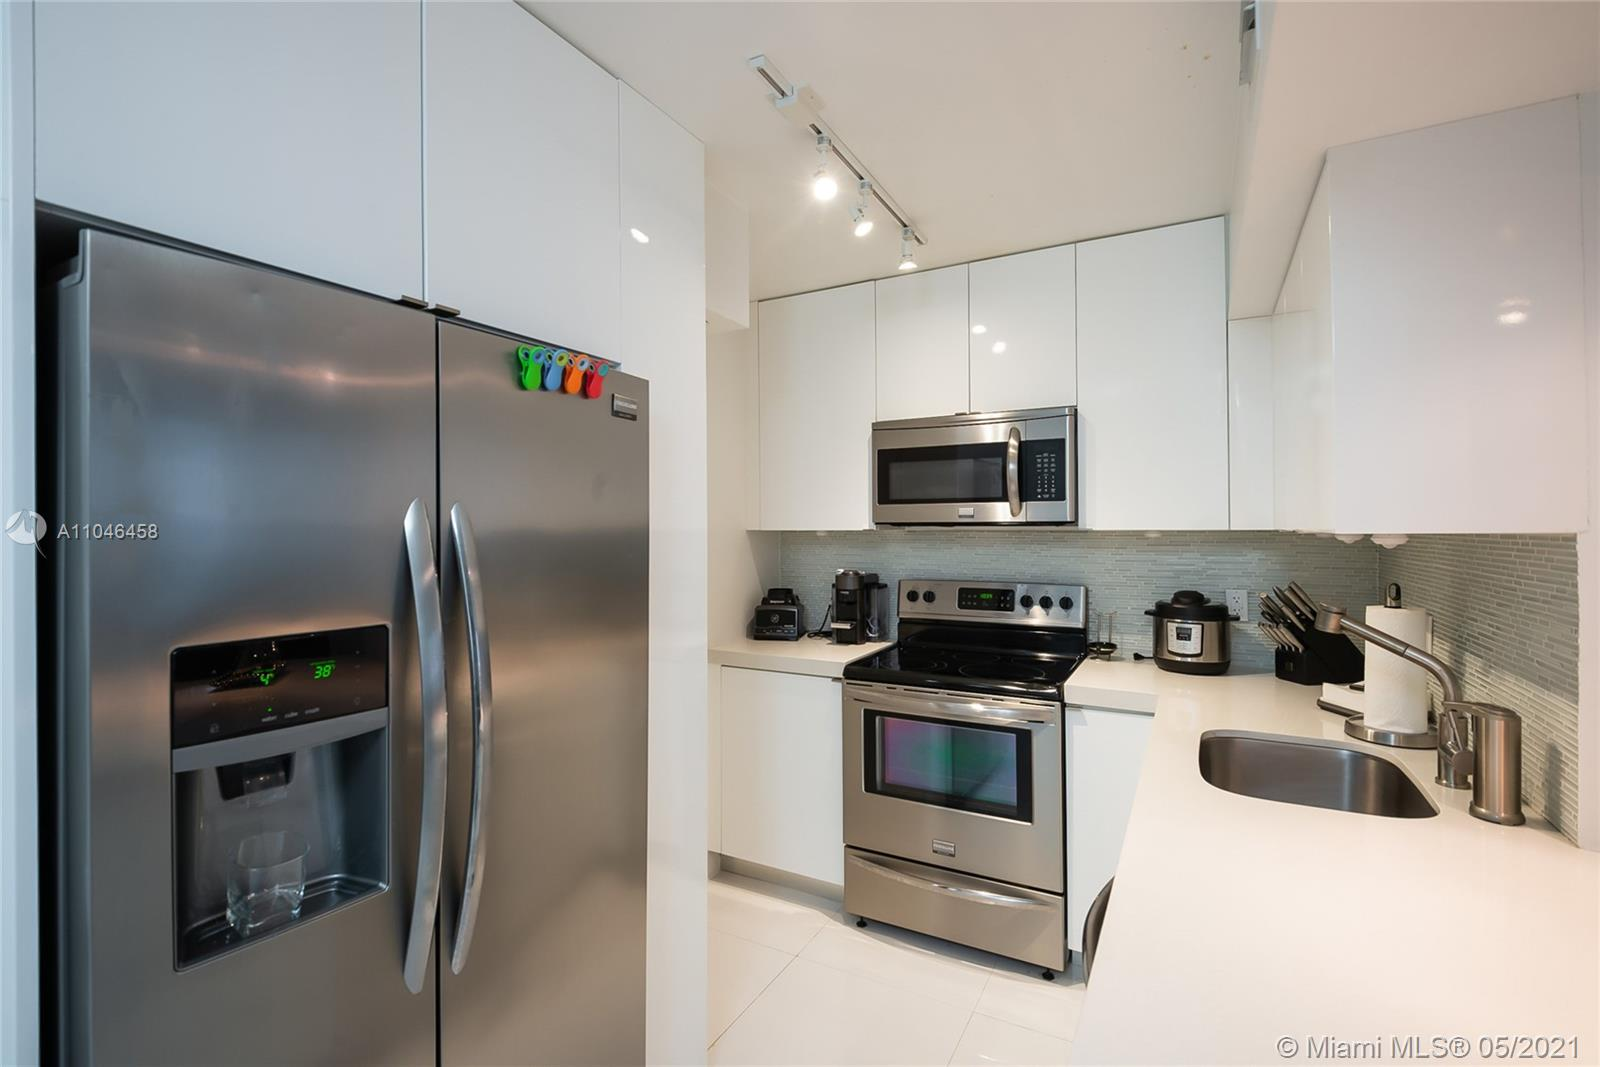 COMPLETELY REMODELED 1 BEDROOM AND 1 BATHROOM WITH BAY VIEW. Full Amenity Building on South Beach. Amenities Include 24 Hour Security, Concierge, Convenience Store, & Spa. Maintenance Includes Hot Water, Cable, Internet and Waterfront Fitness Center. Walking Distance Whole Foods, Restaurants, Walgreens, Lincoln Road, and the Beach. Within 15 minutes of Downtown Miami, the Arts and Entertainment District, and Miami Intl. Airport.